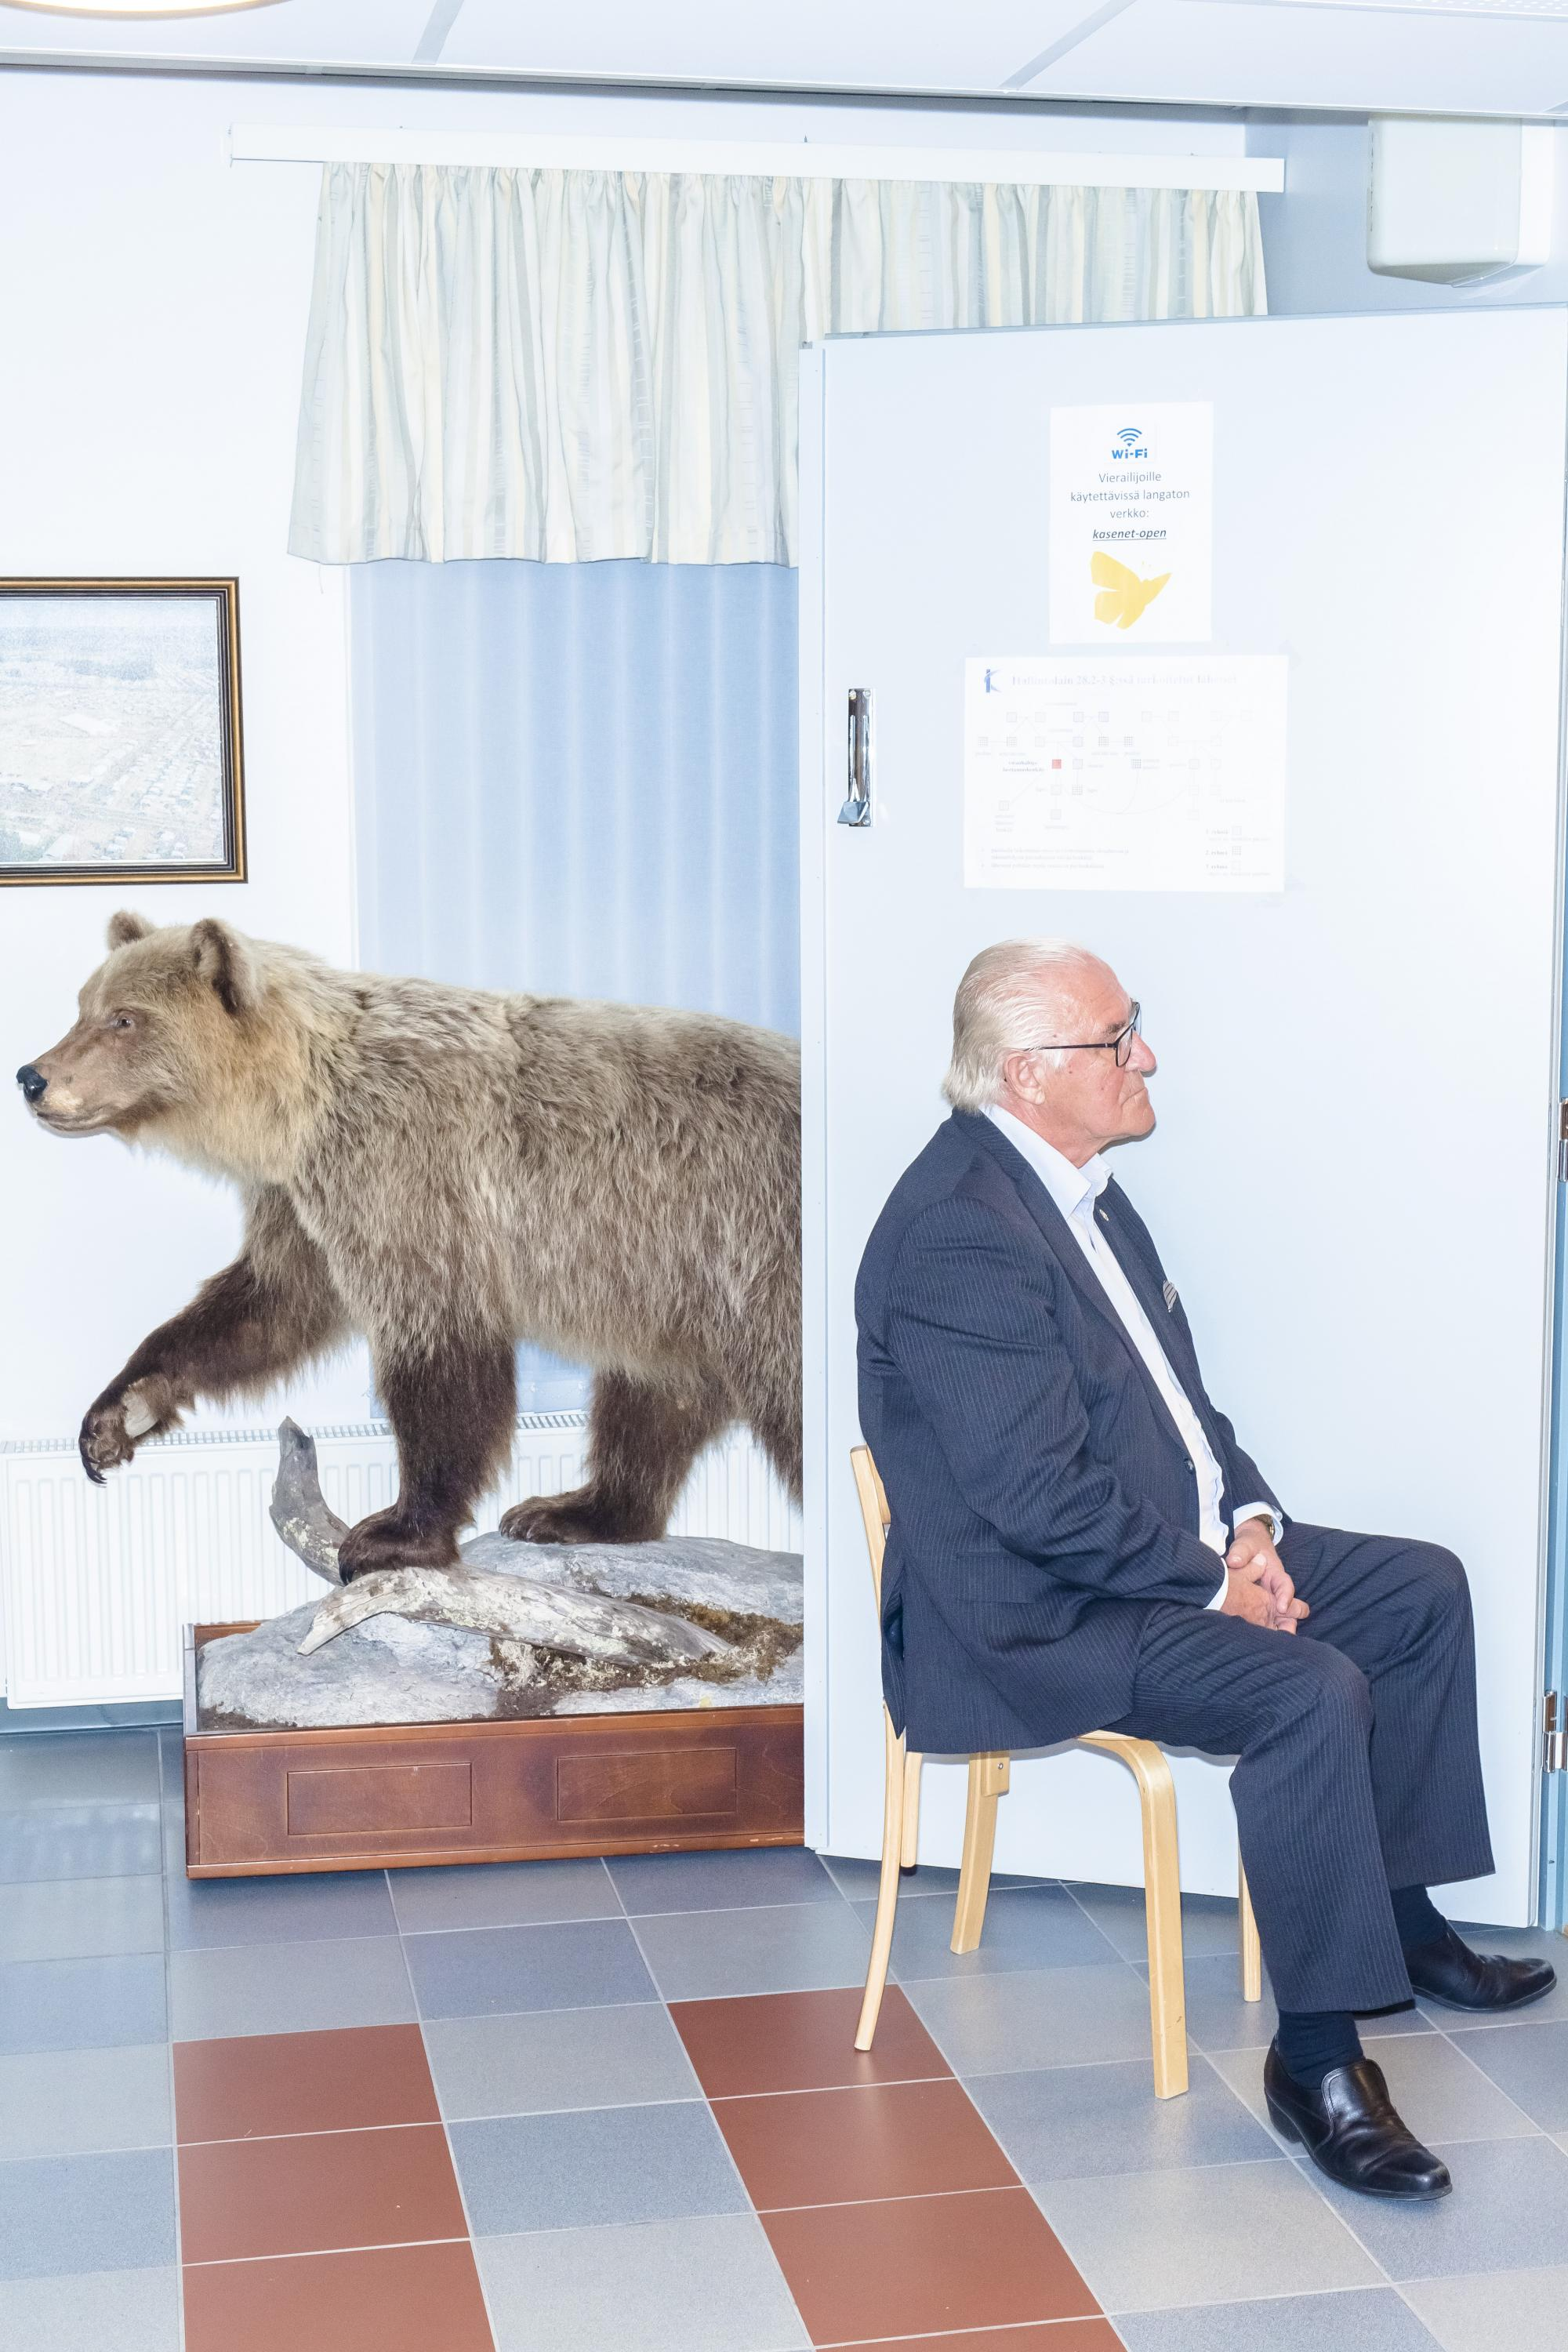 Sakari Piippo: from the series Some Observations on the Political System of Finland, 2015–2019.